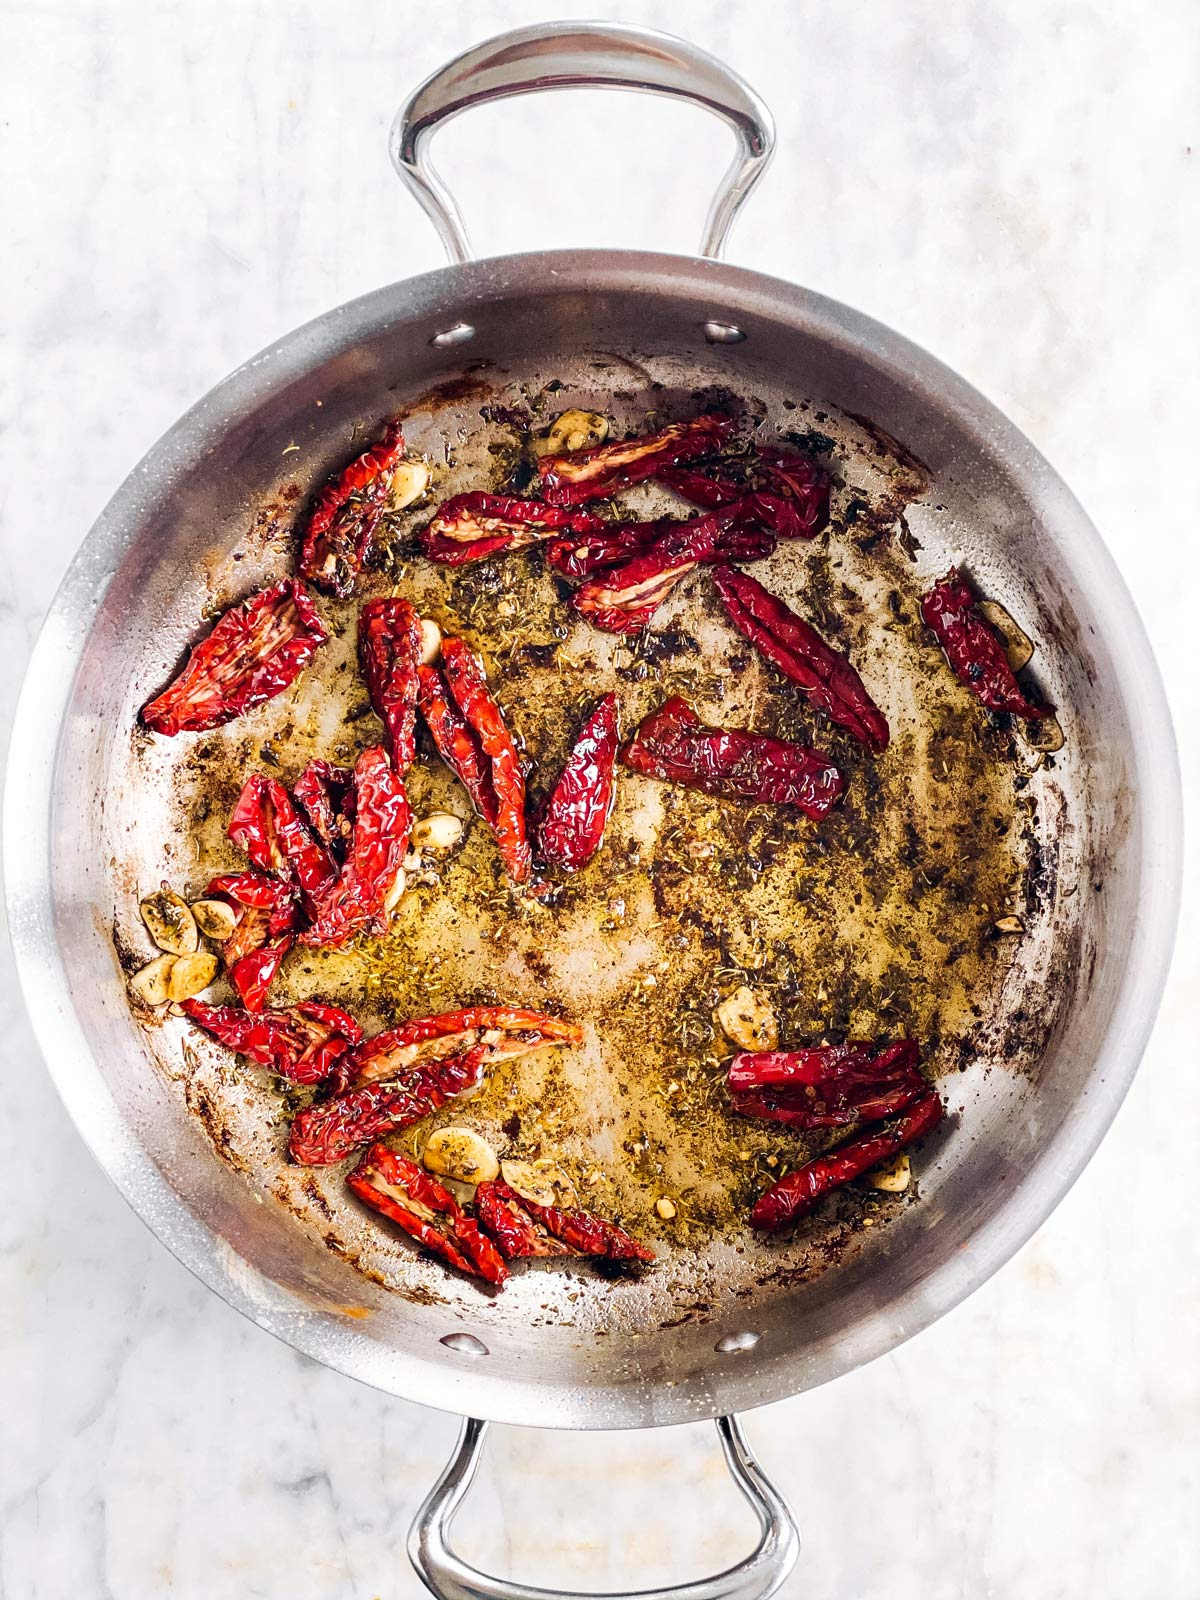 skillet with sun-dried tomatoes, oil and seasoning